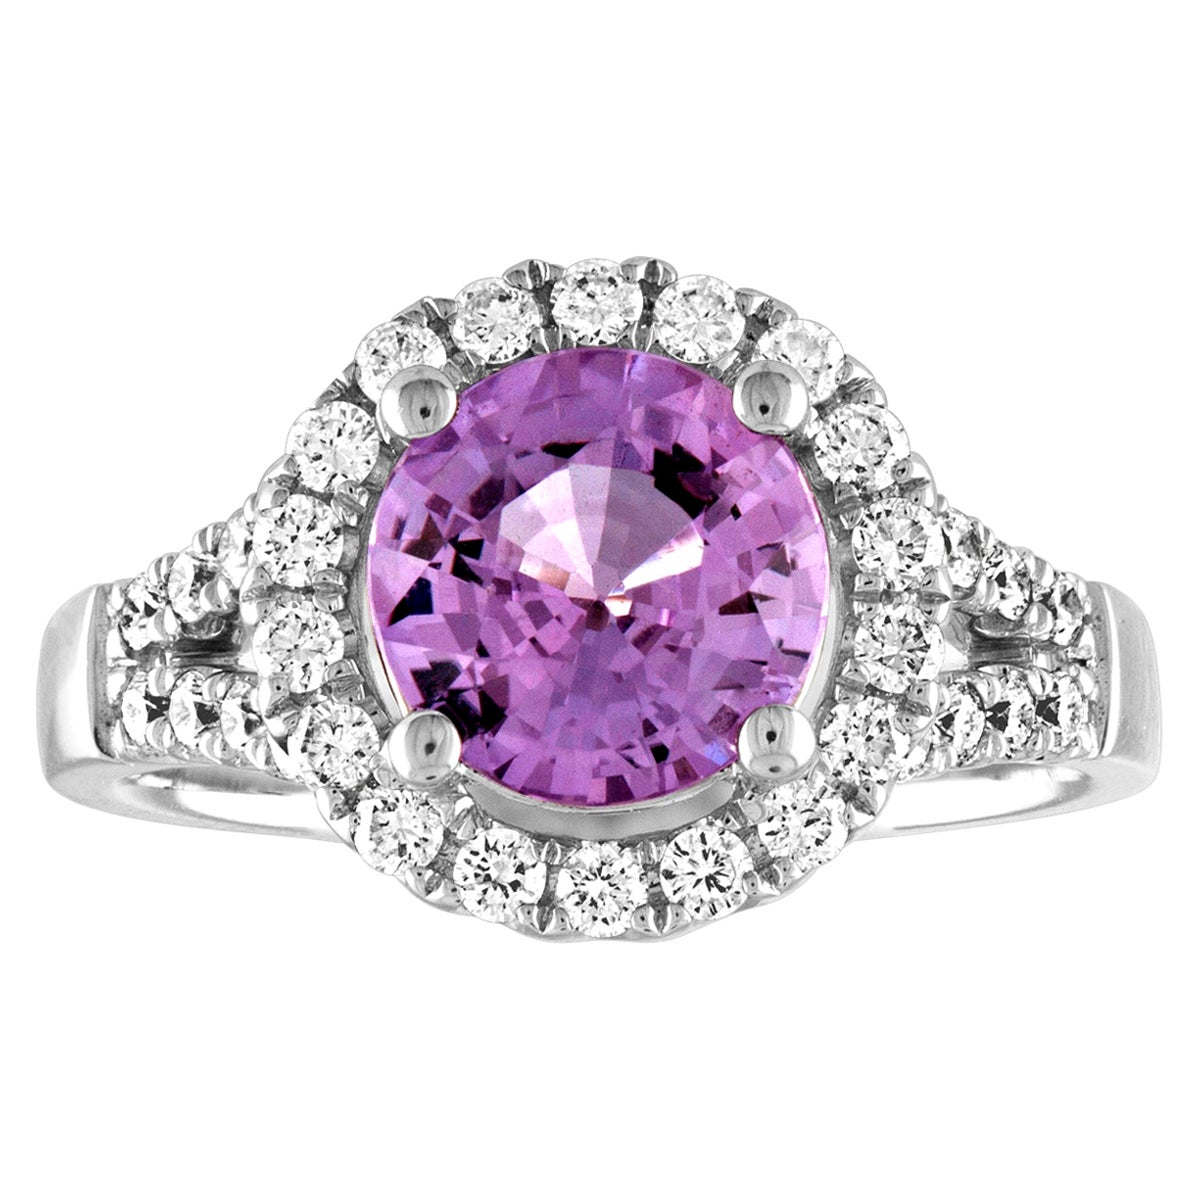 Certified No Heat 2.18 Carat Round Pink Sapphire Diamond Gold Ring